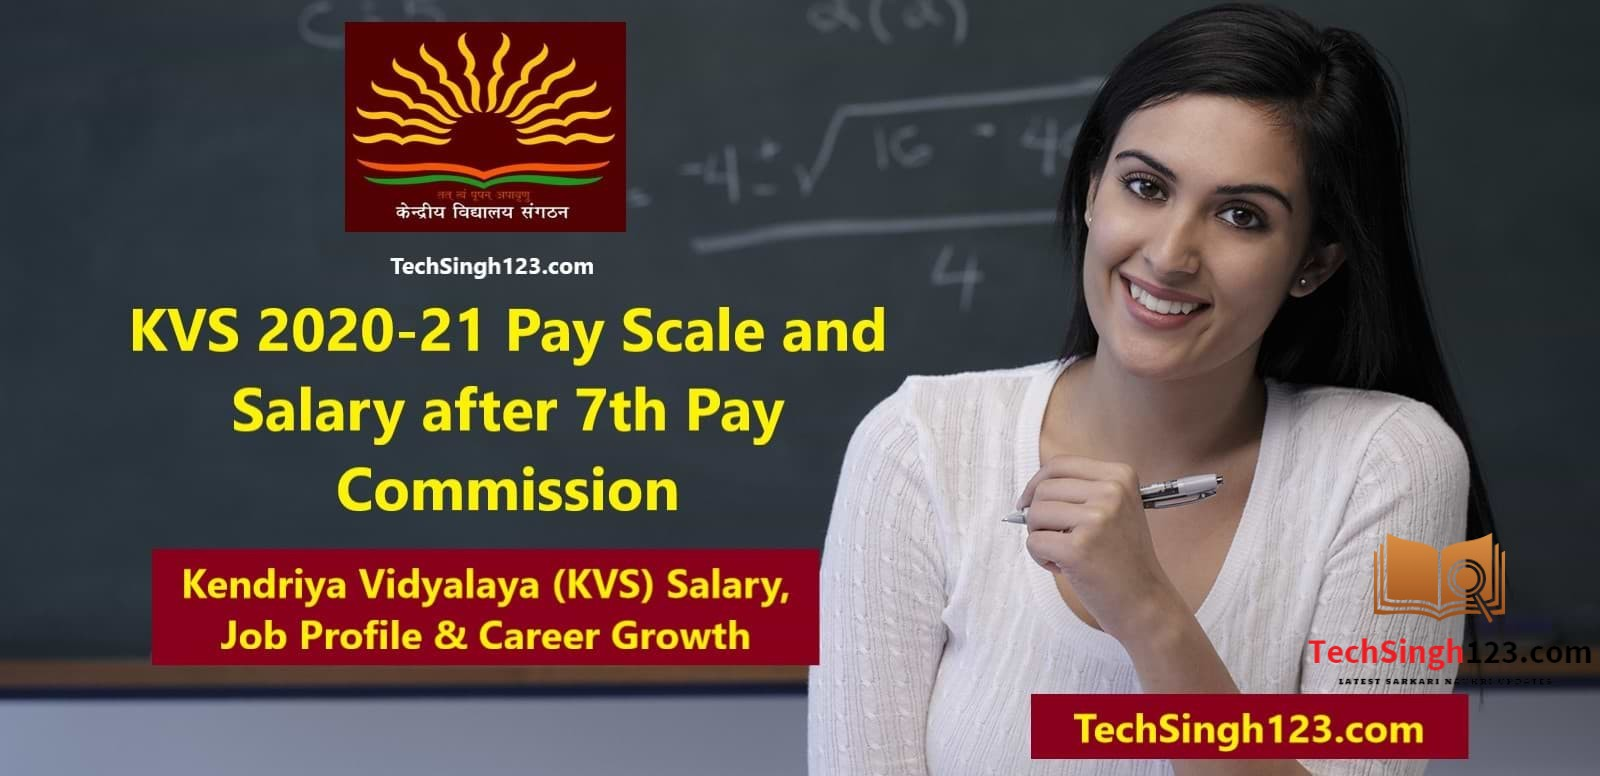 KVS 2020-21 Pay Scale and Salary after 7th Pay Commission   KVS 2020 PGT/TGT/PRT Teacher's Salary after 7th Pay Commission: Get the detailed information about the pay scale and salary structure Kendriya Vidyalaya (KVS) Salary, Job Profile